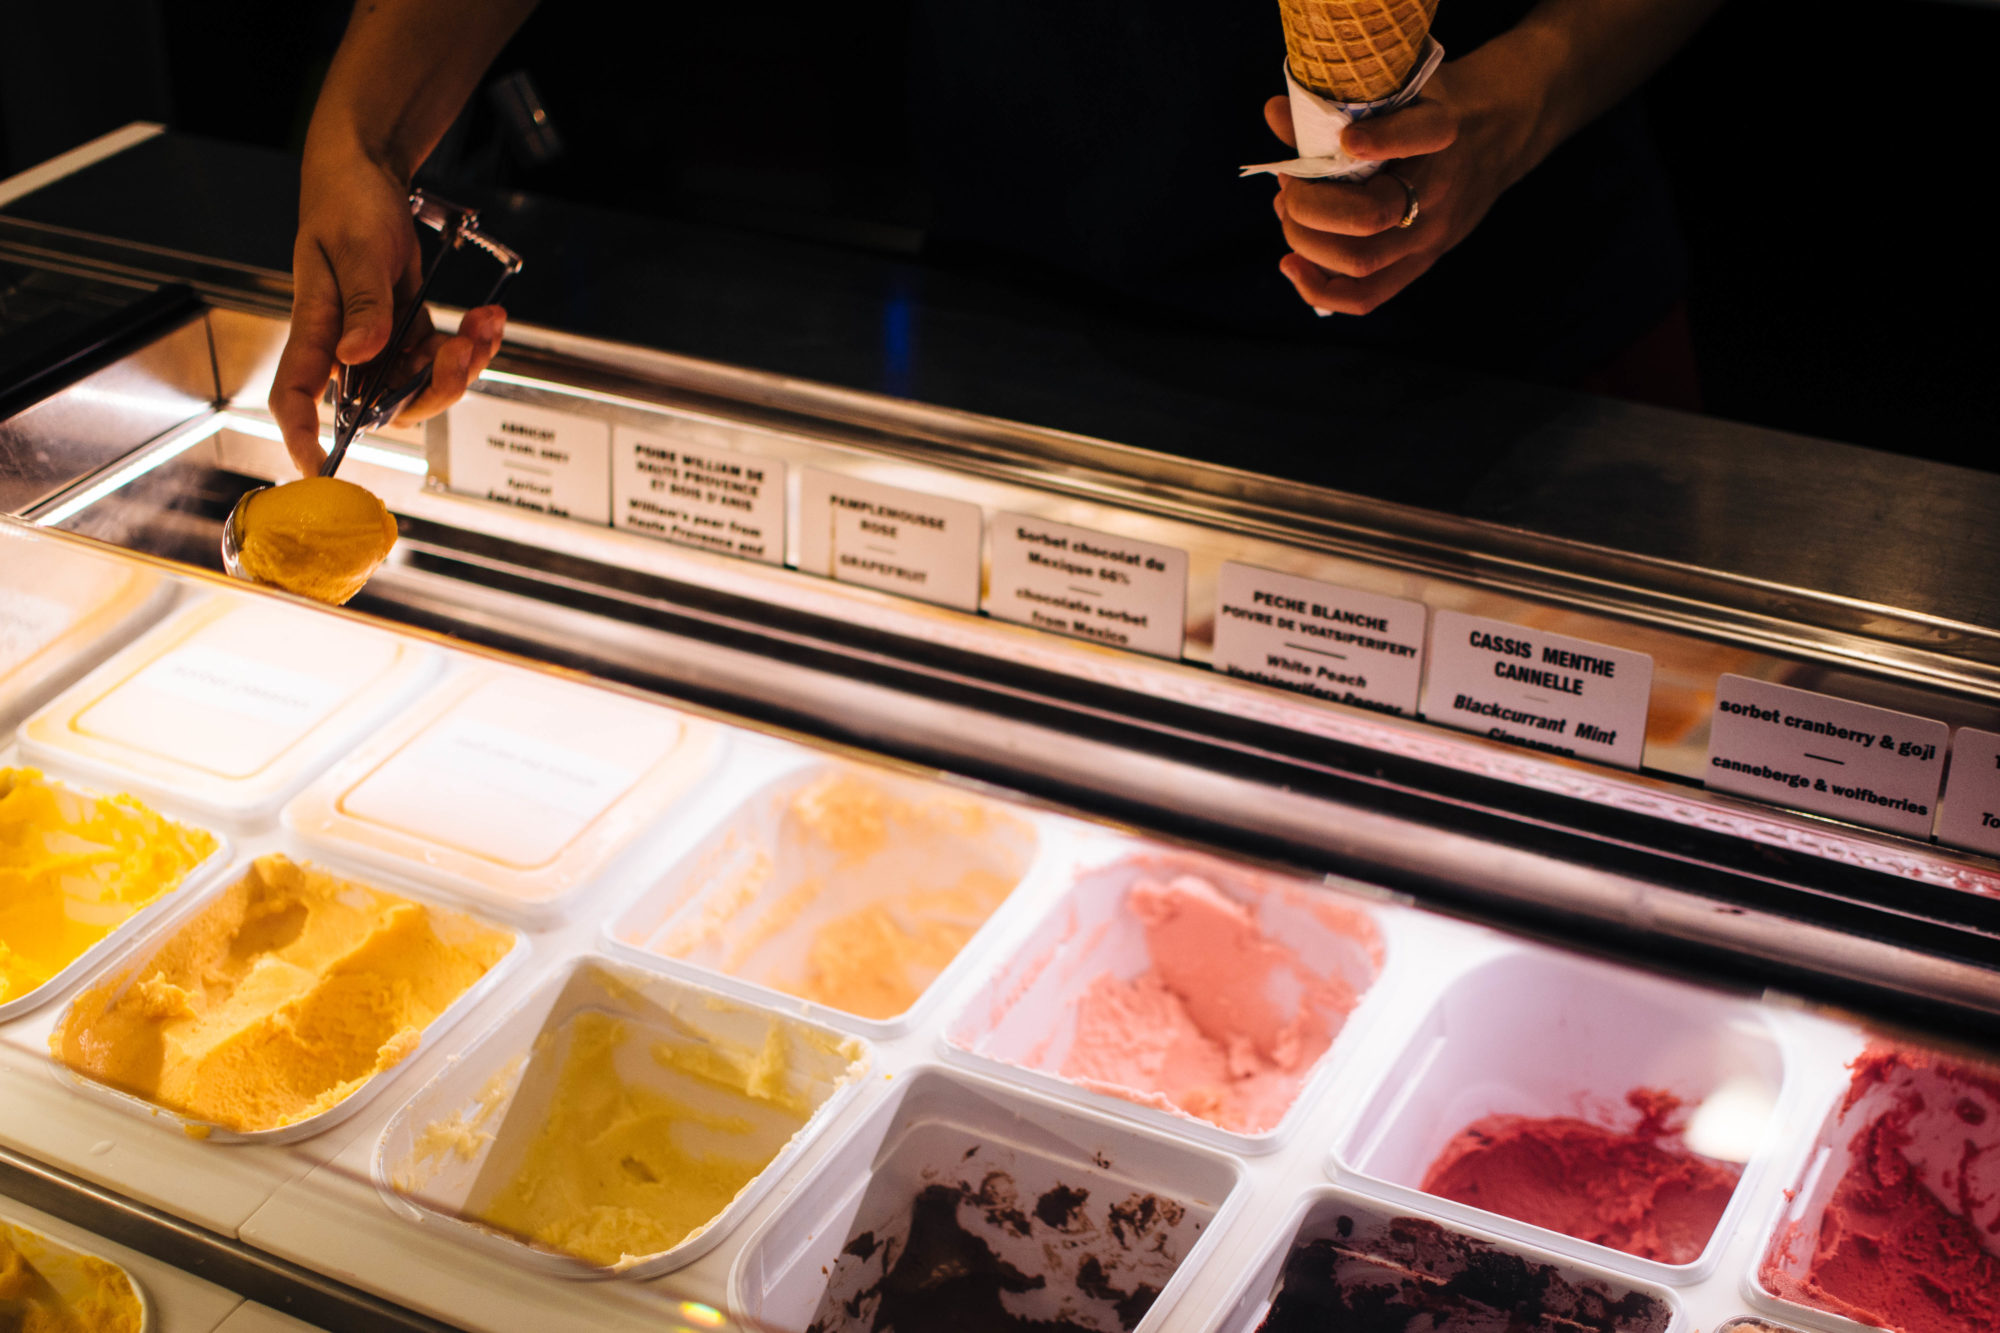 The ice cream counter at Pozzeto ice cream shop in Paris with a vendor scooping out the flavors into a cone.